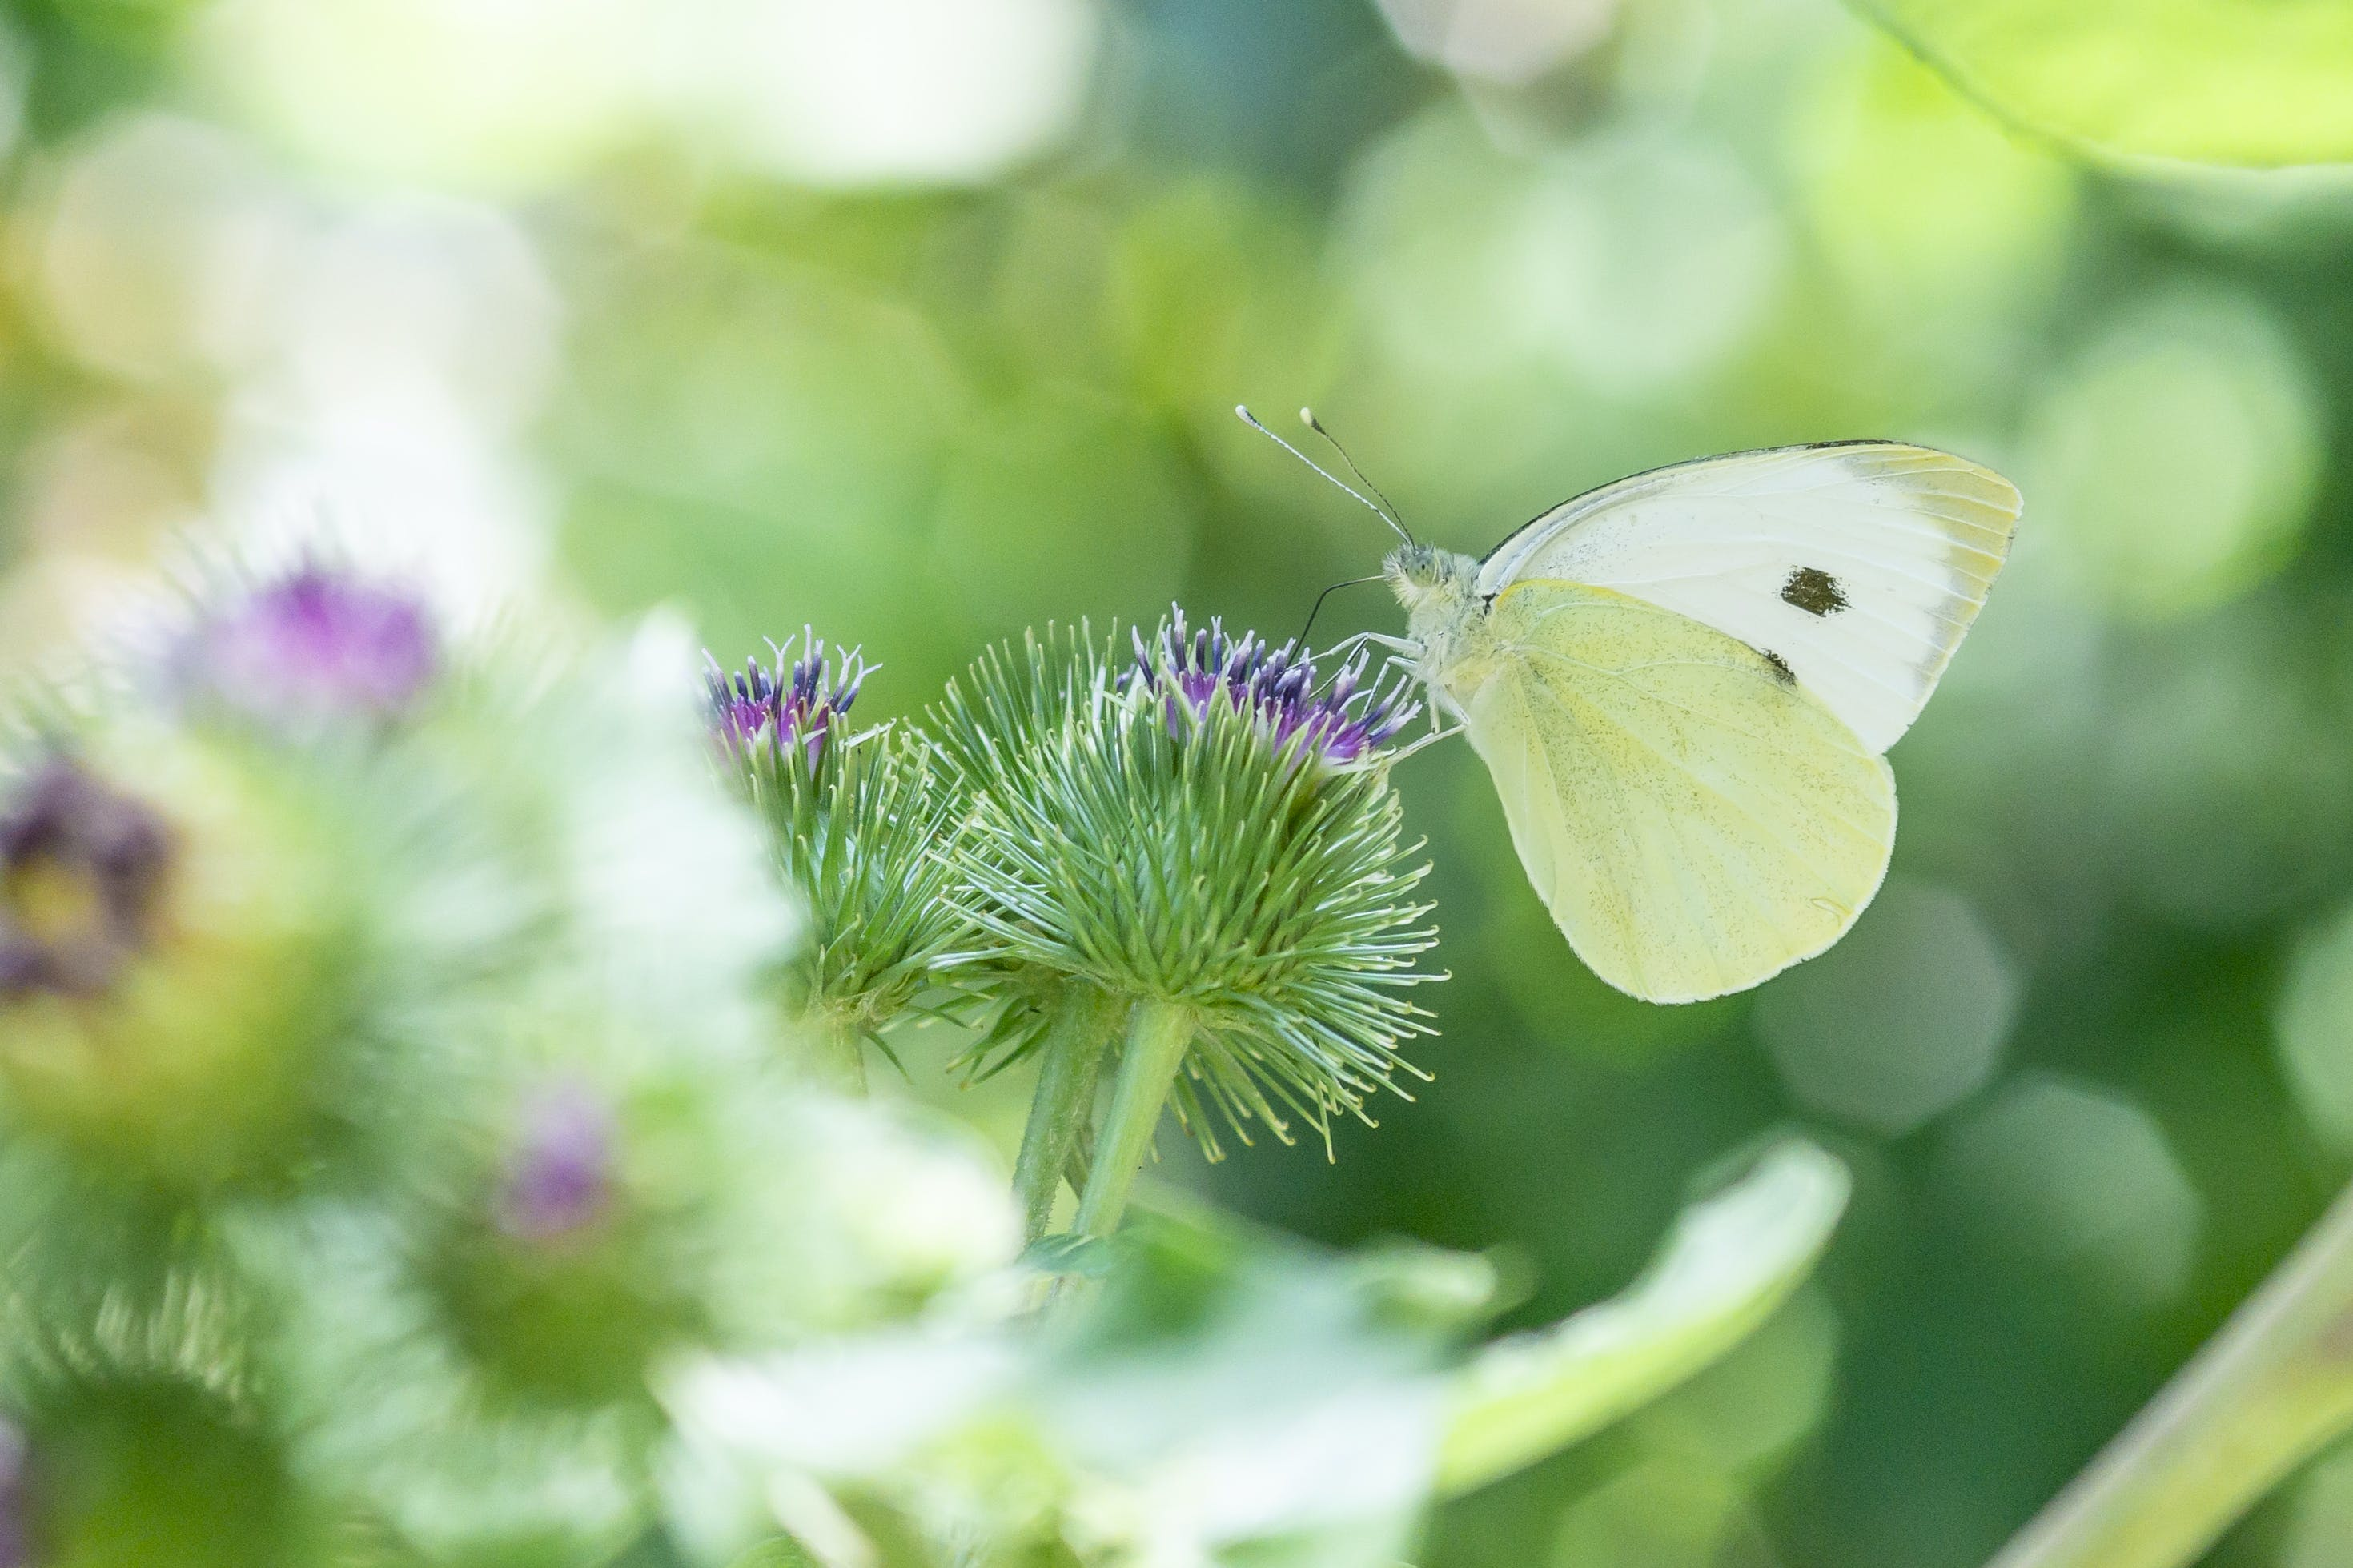 Cabbage White Butterfly Perching on Purple Flower in Selective Focus Photography